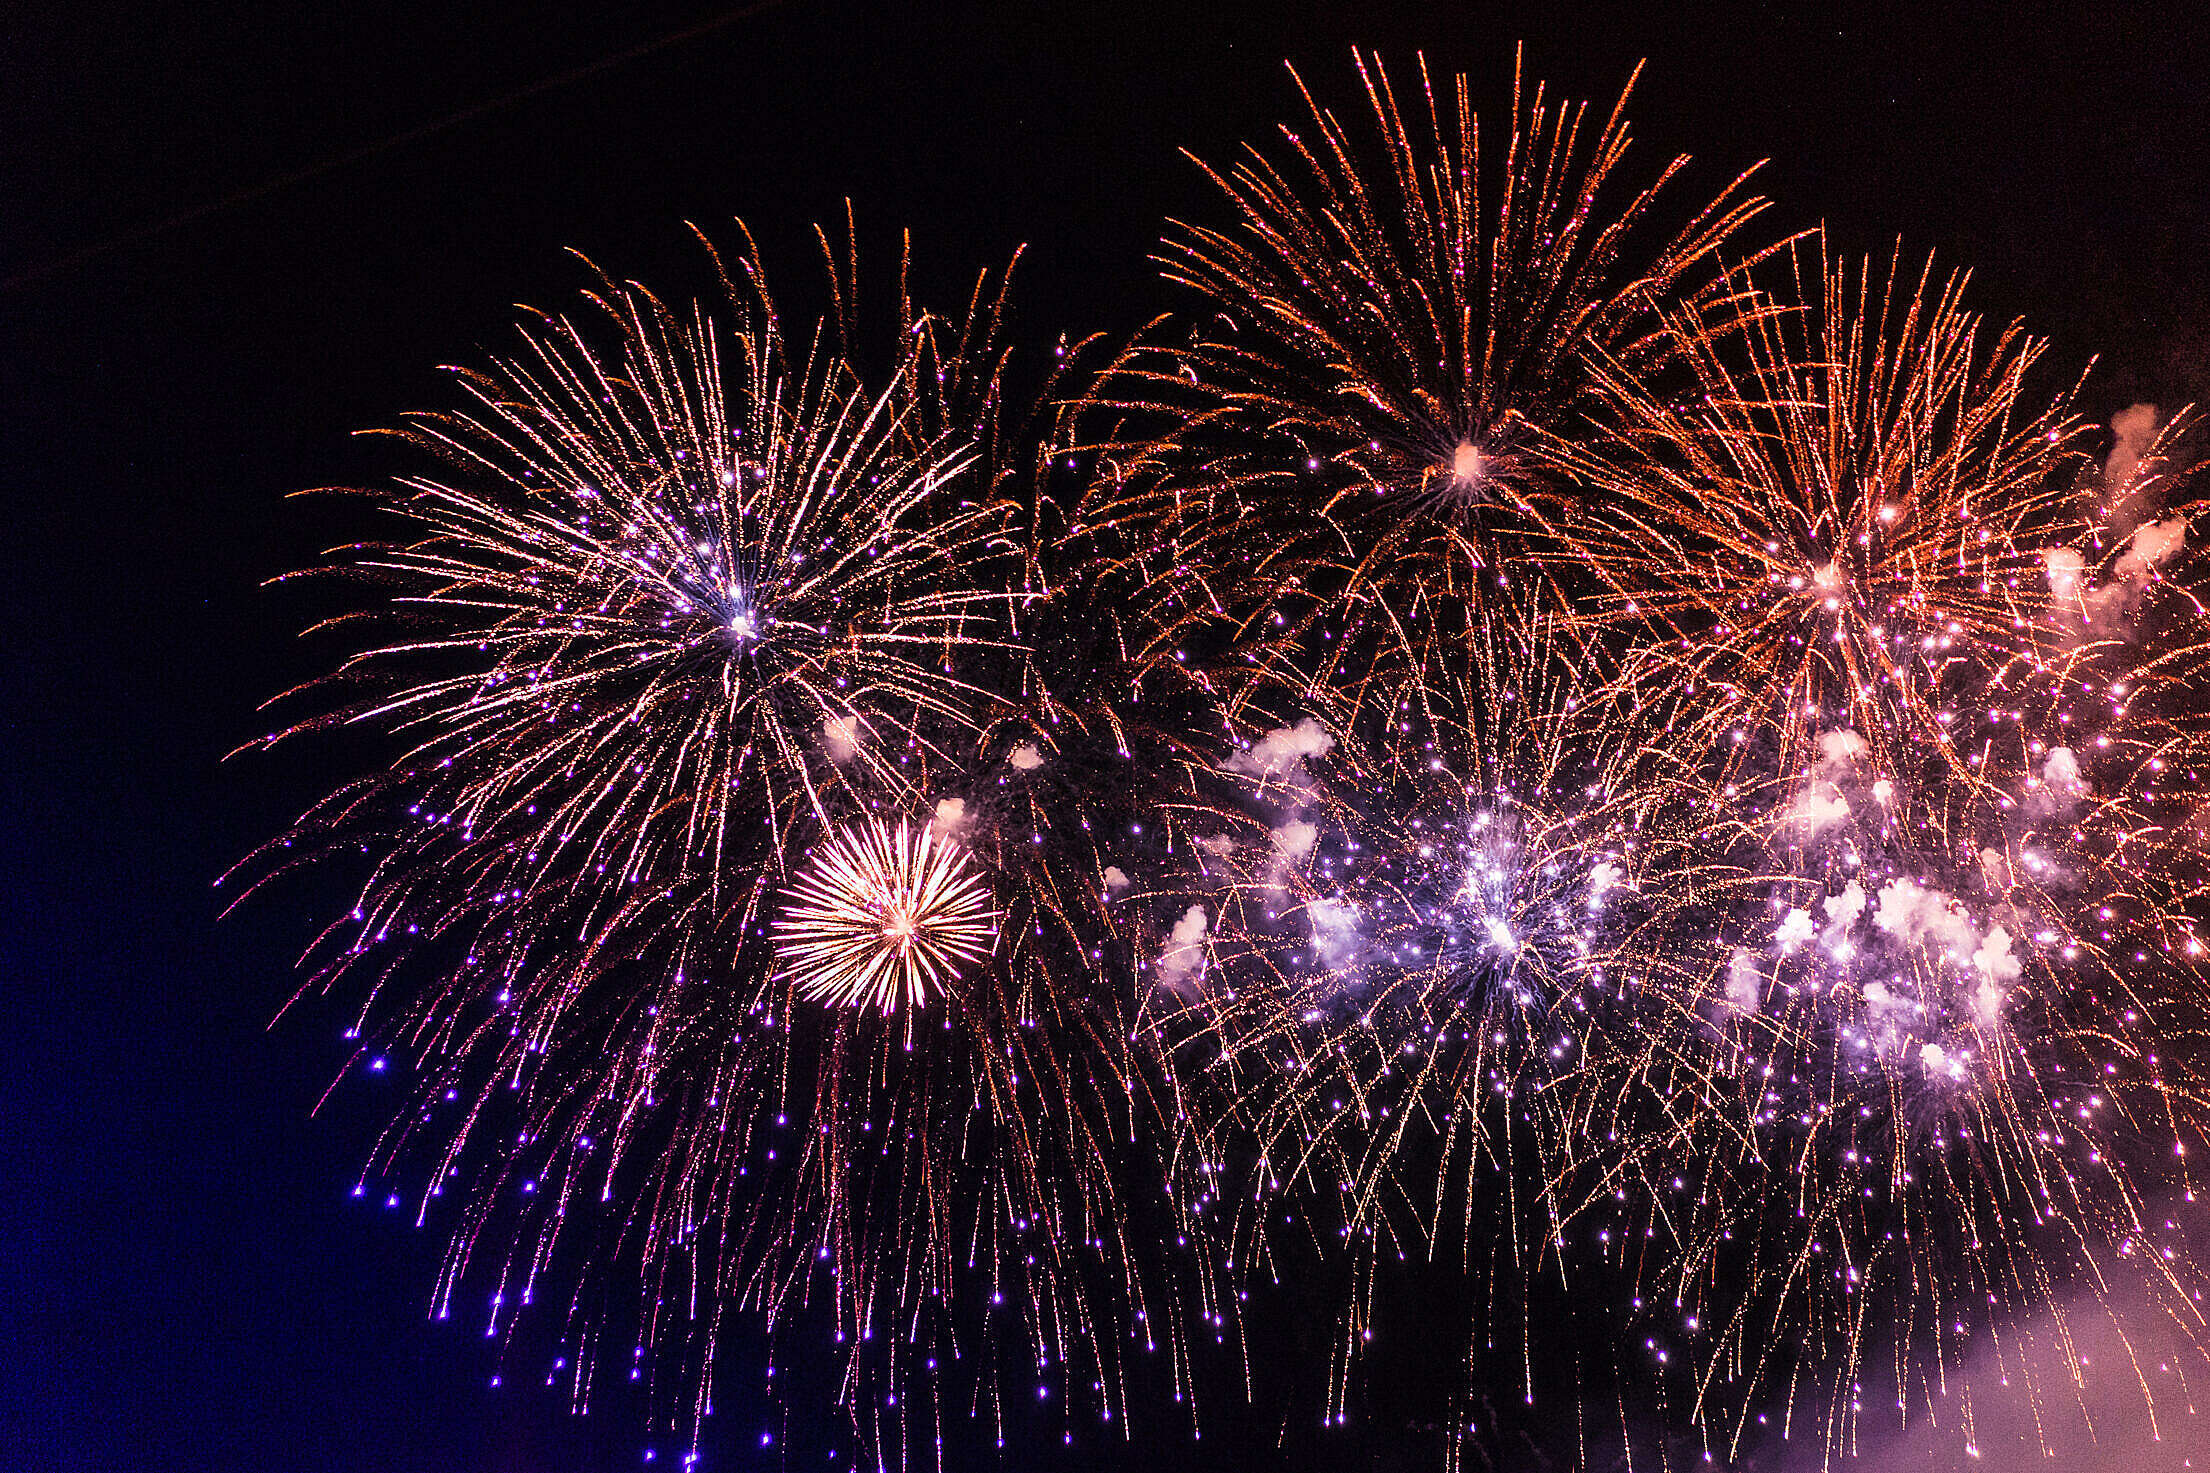 Colorful Fireworks Pyrotechnics Against Black Night Sky Free Stock Photo